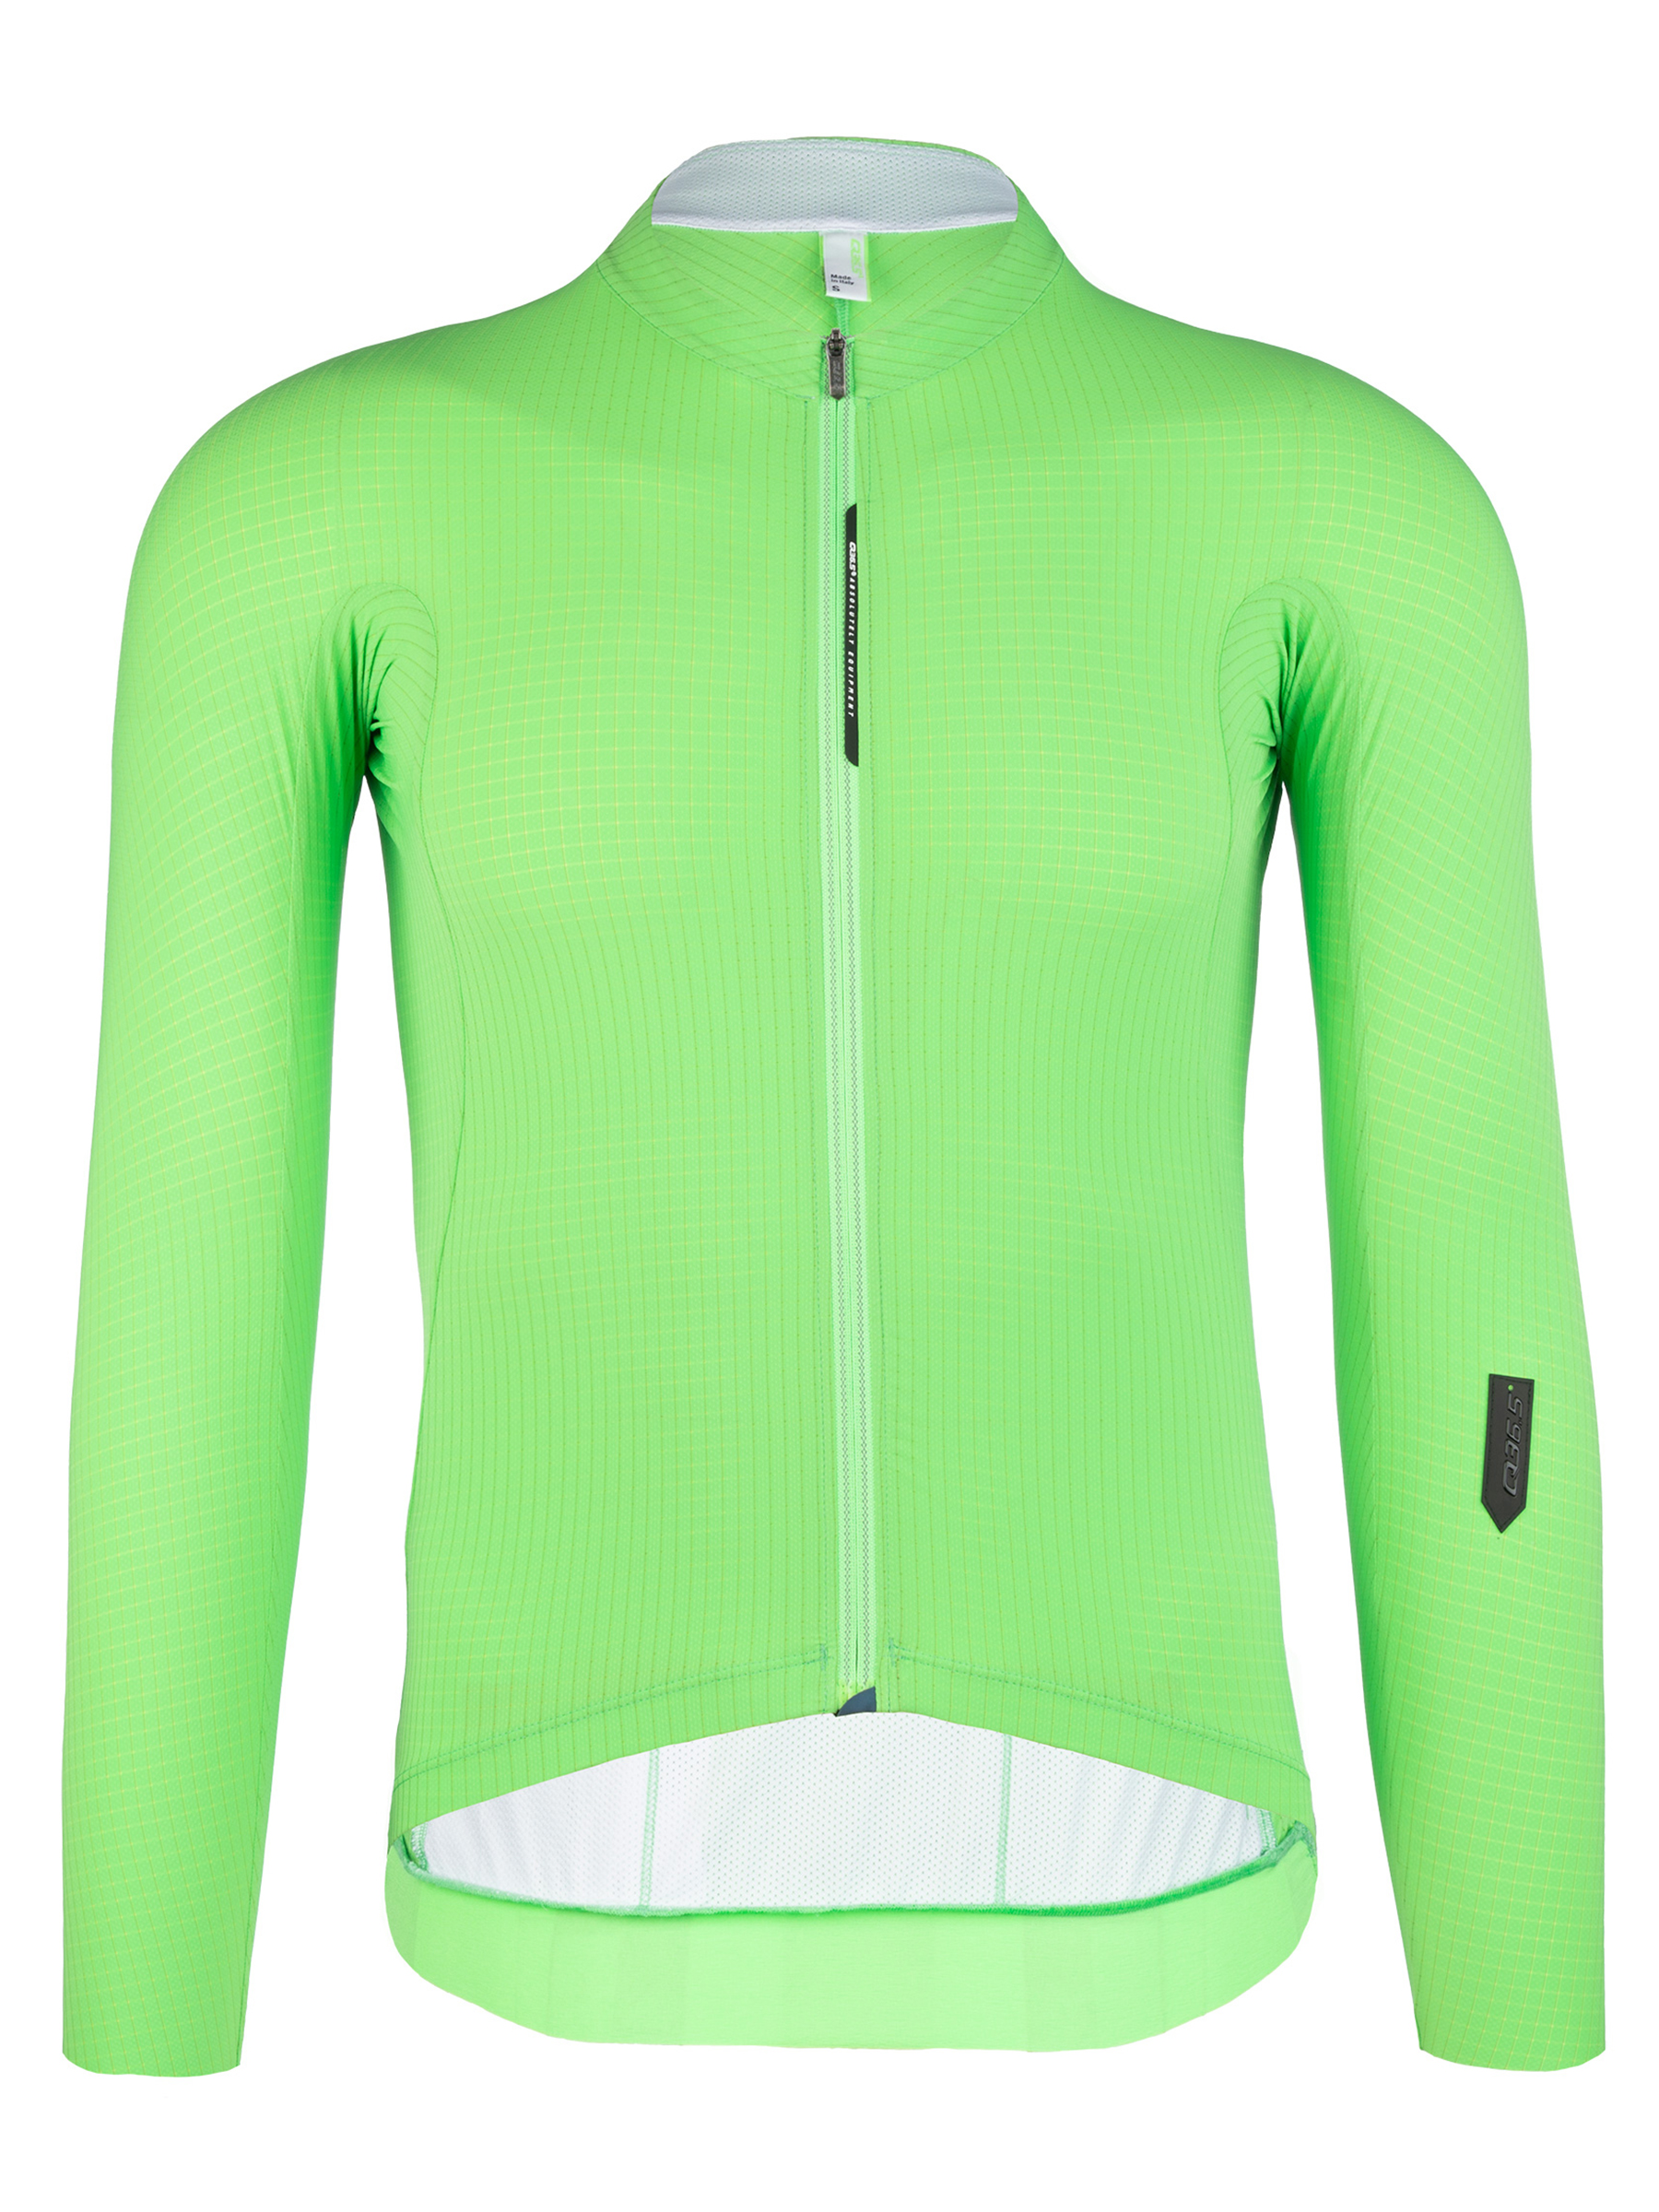 mens cycling jersey long sleeve Pinstripe X green fluo Q36.5